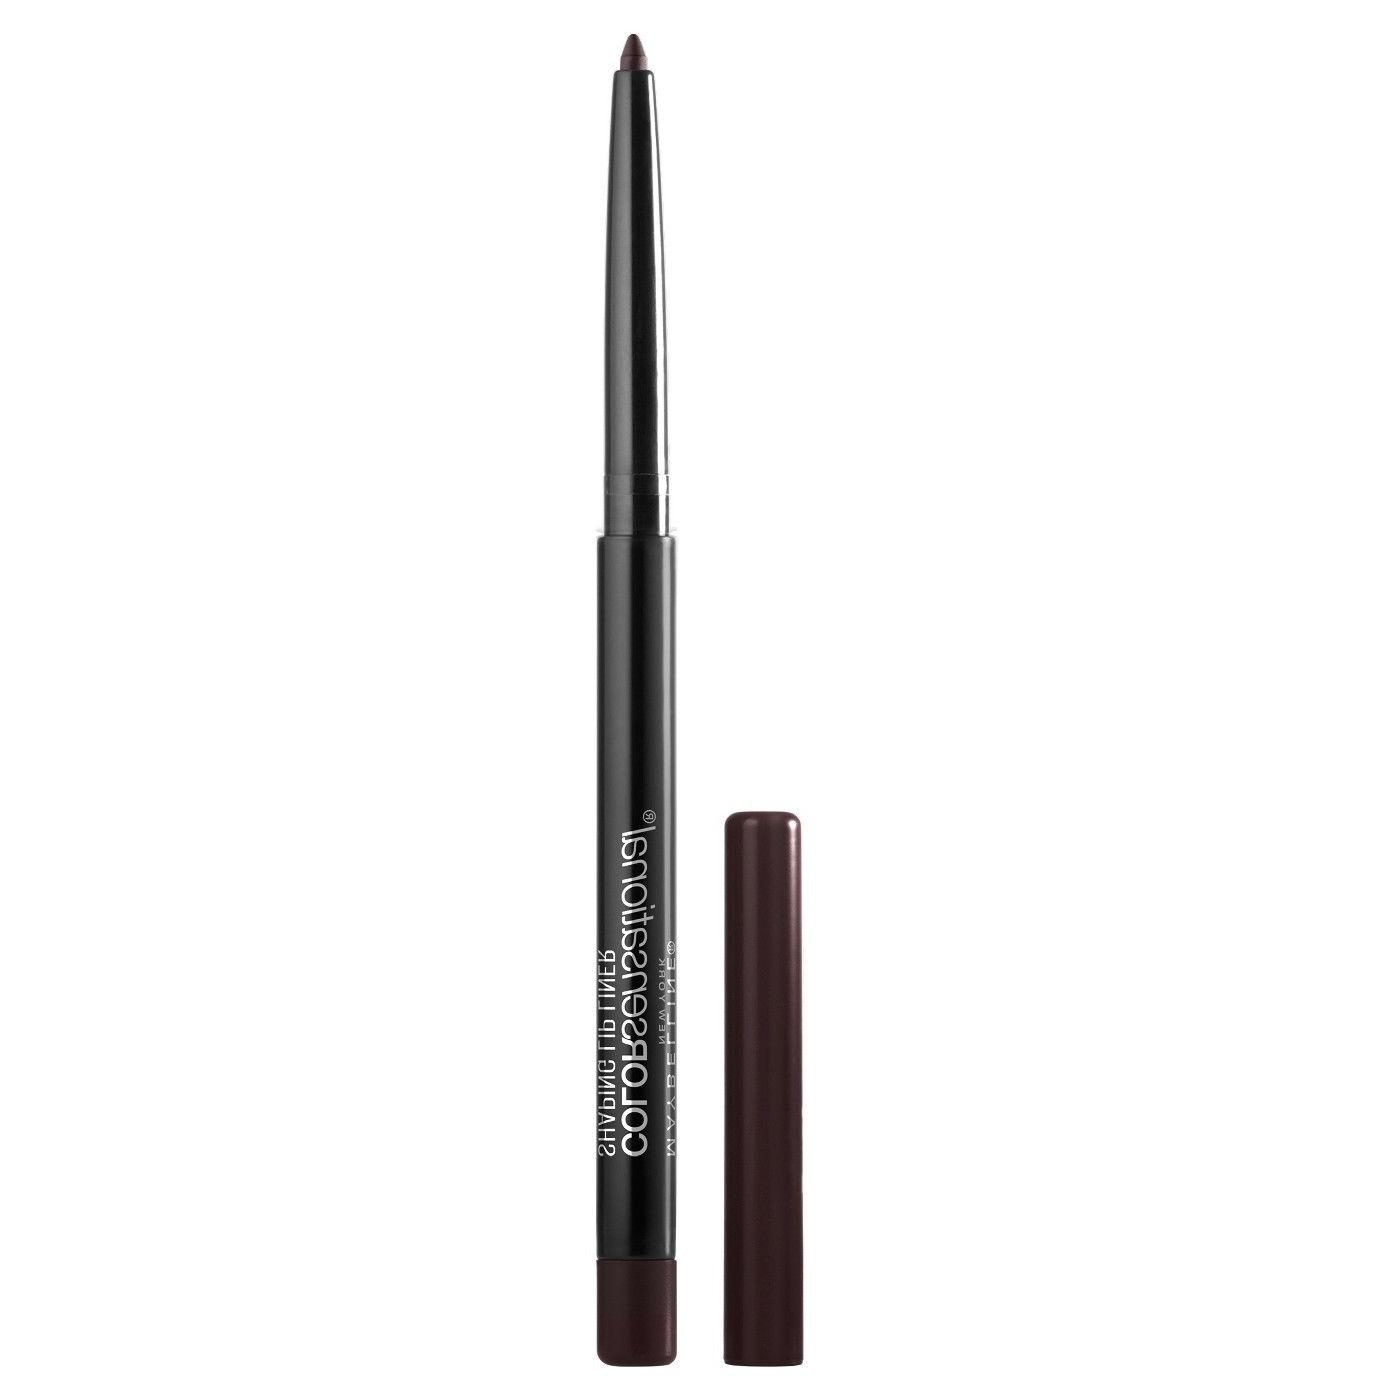 MAYBELLINE COLOR SENSATIONAL SHAPING LIP LINER #120 RICH CHO